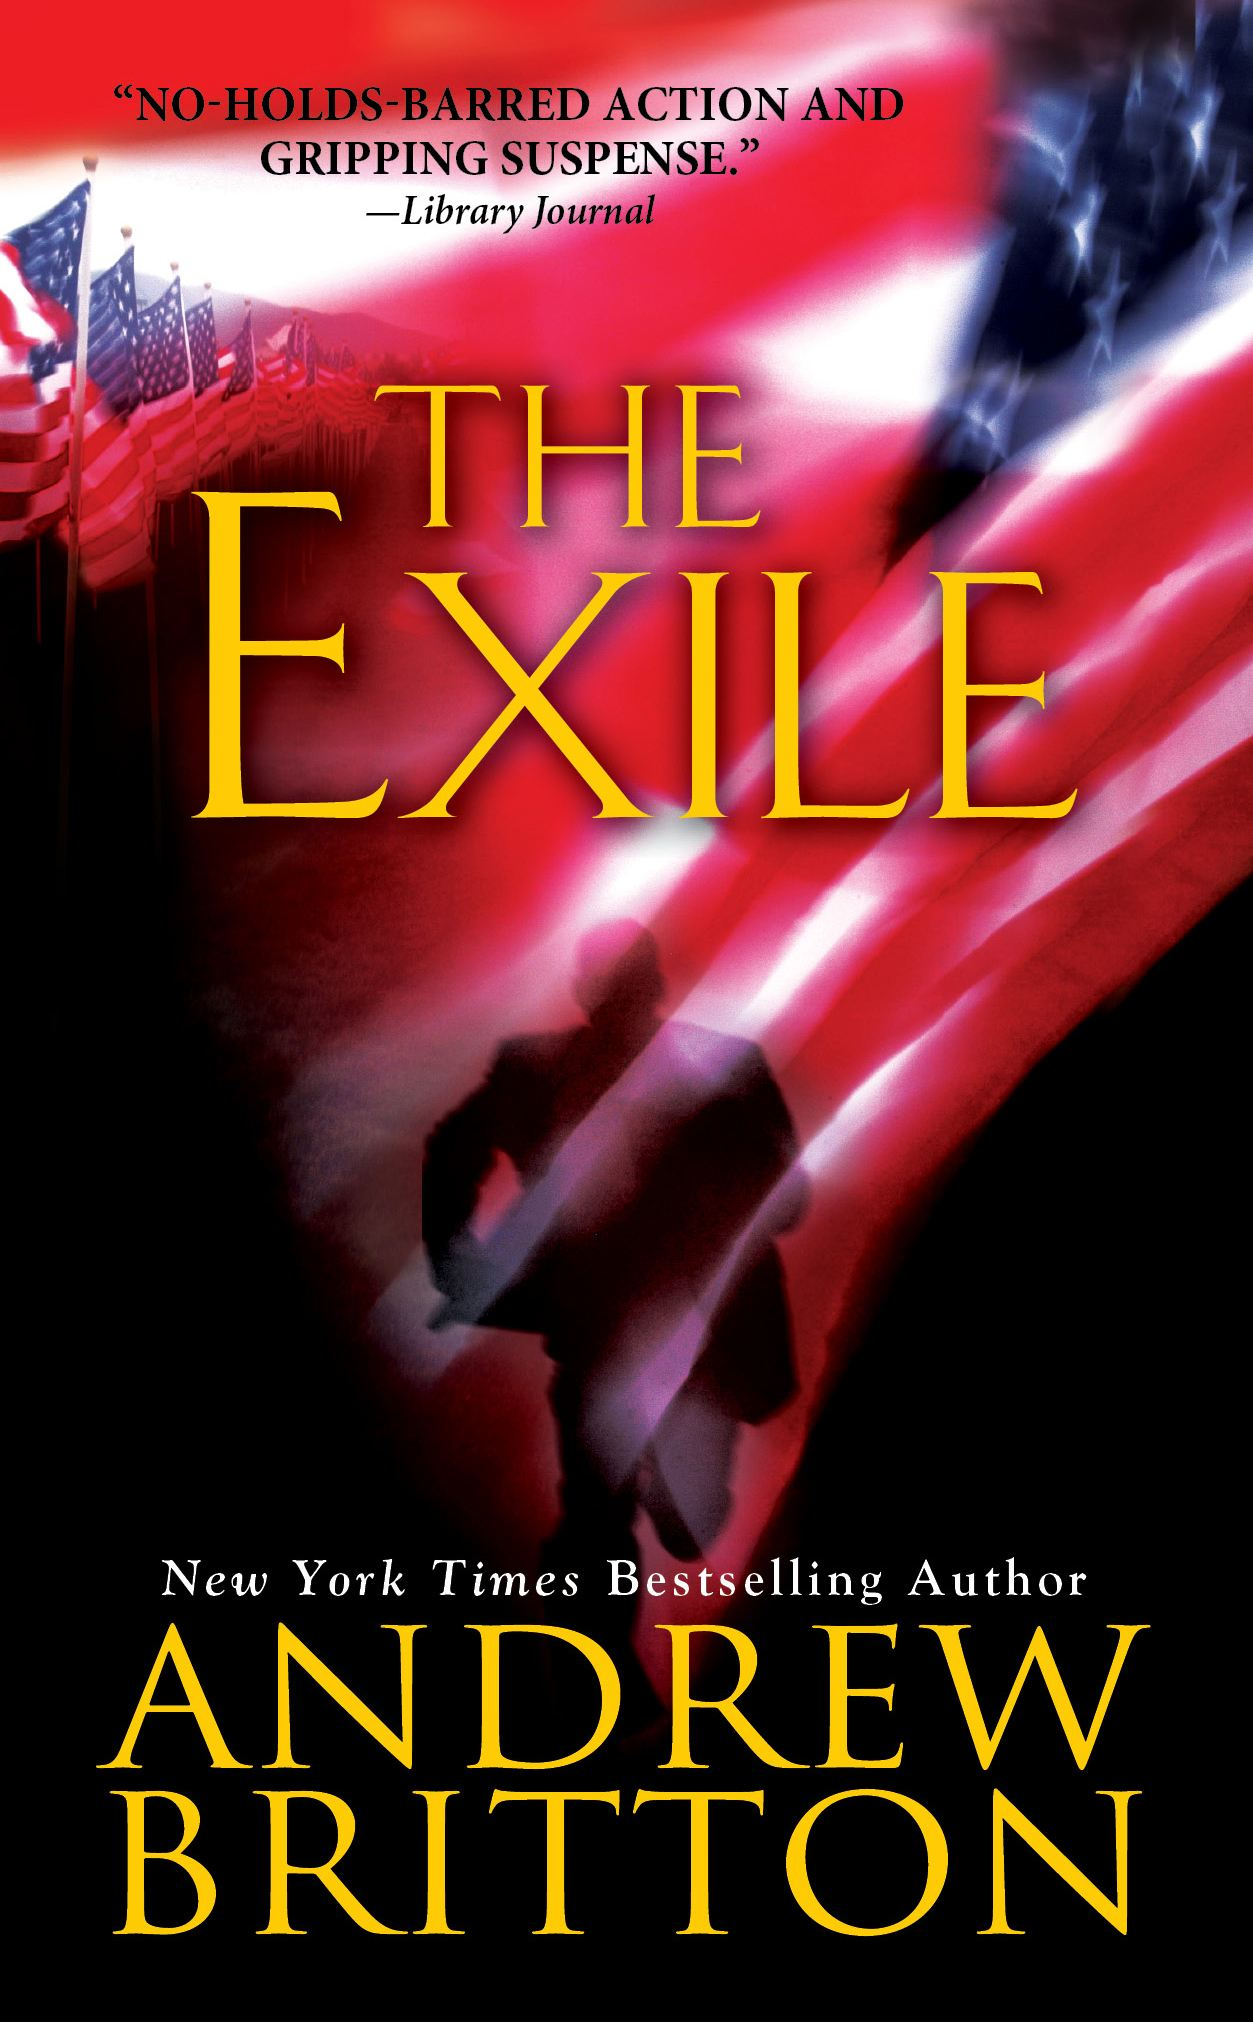 The Exile By: Andrew Britton